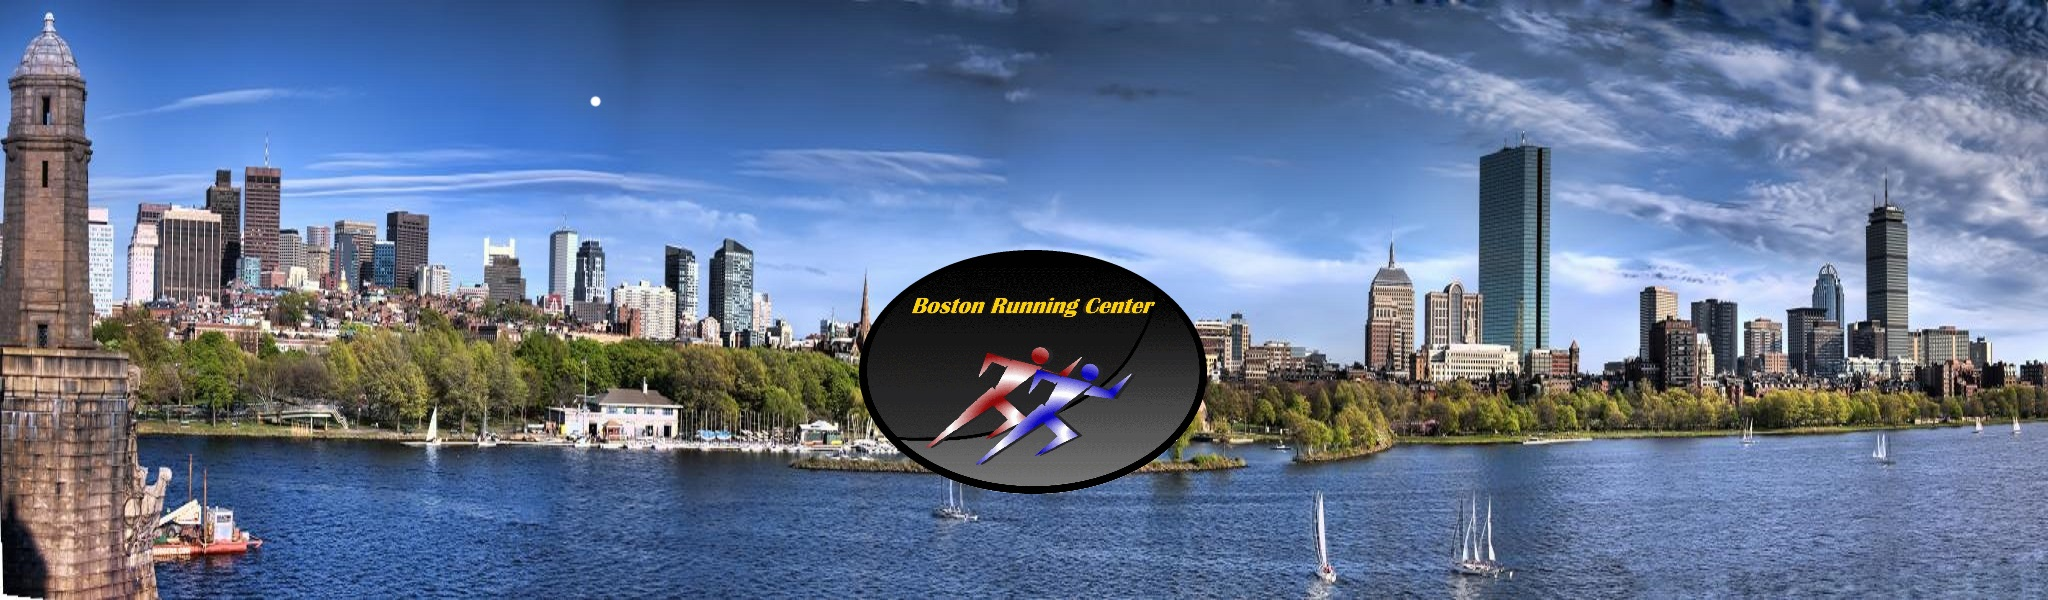 Boston Running Center